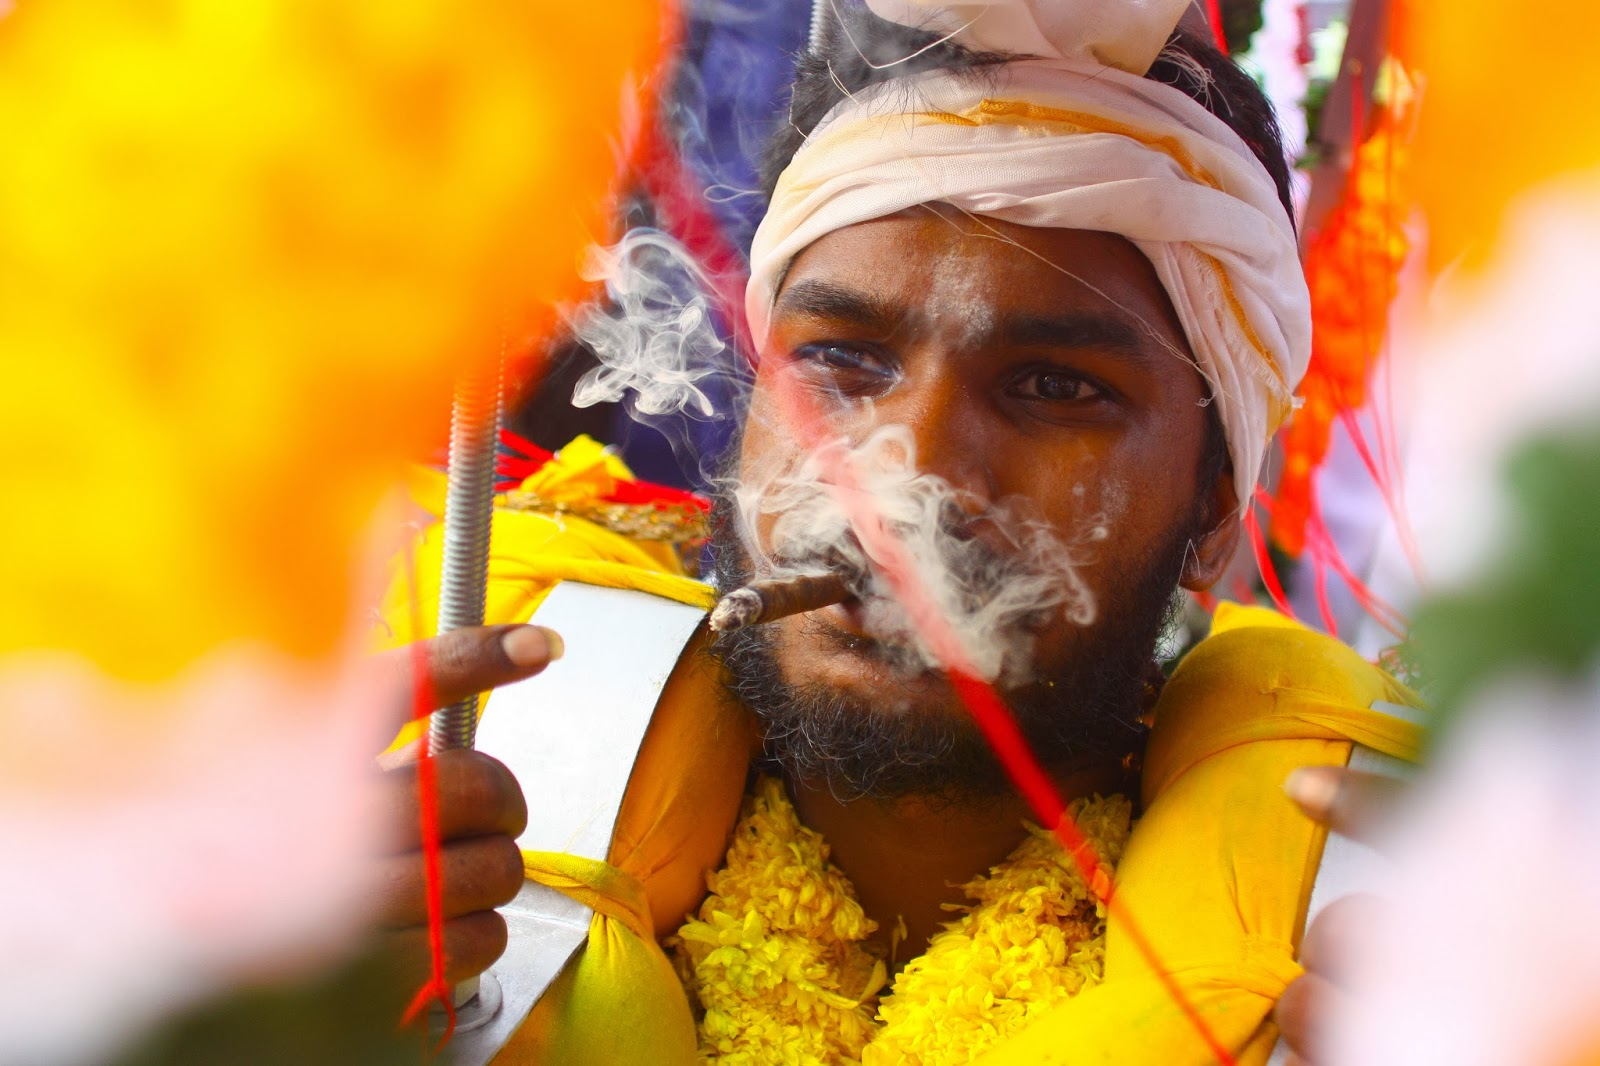 Thaipusam Photography tips